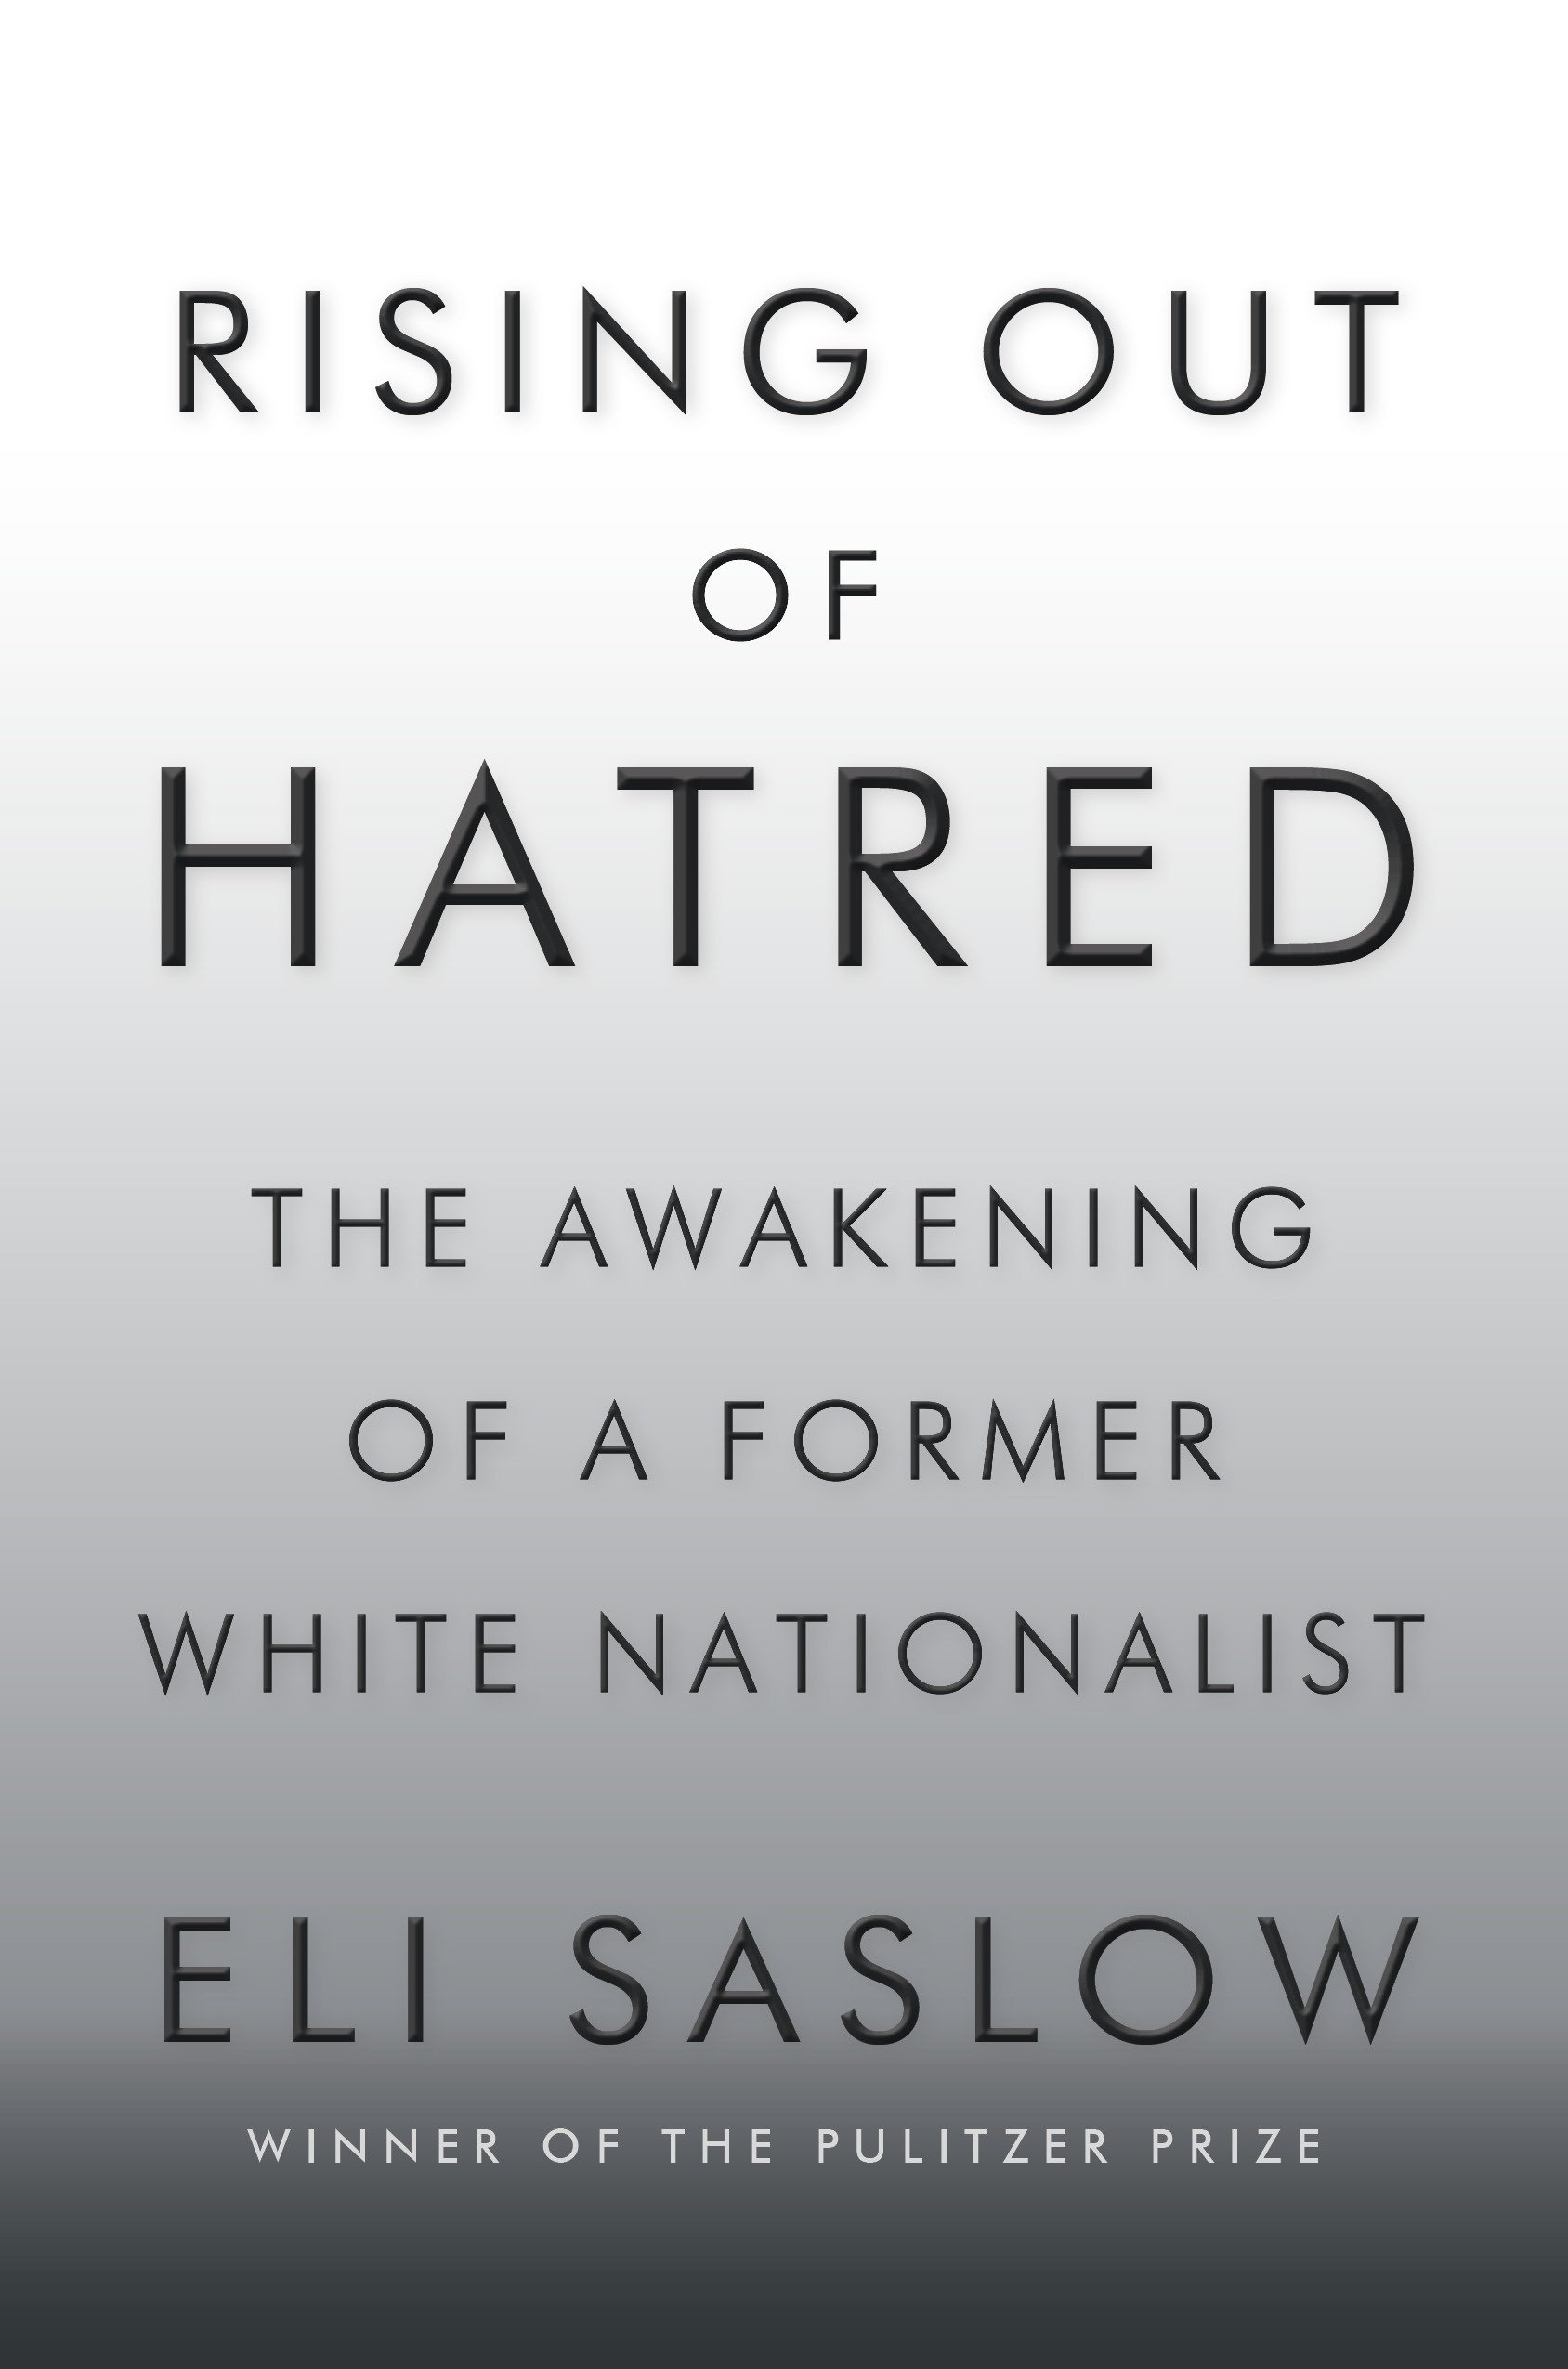 Rising Out of Hatred: The Awakening of a Former White Nationalist, by Eli Saslow